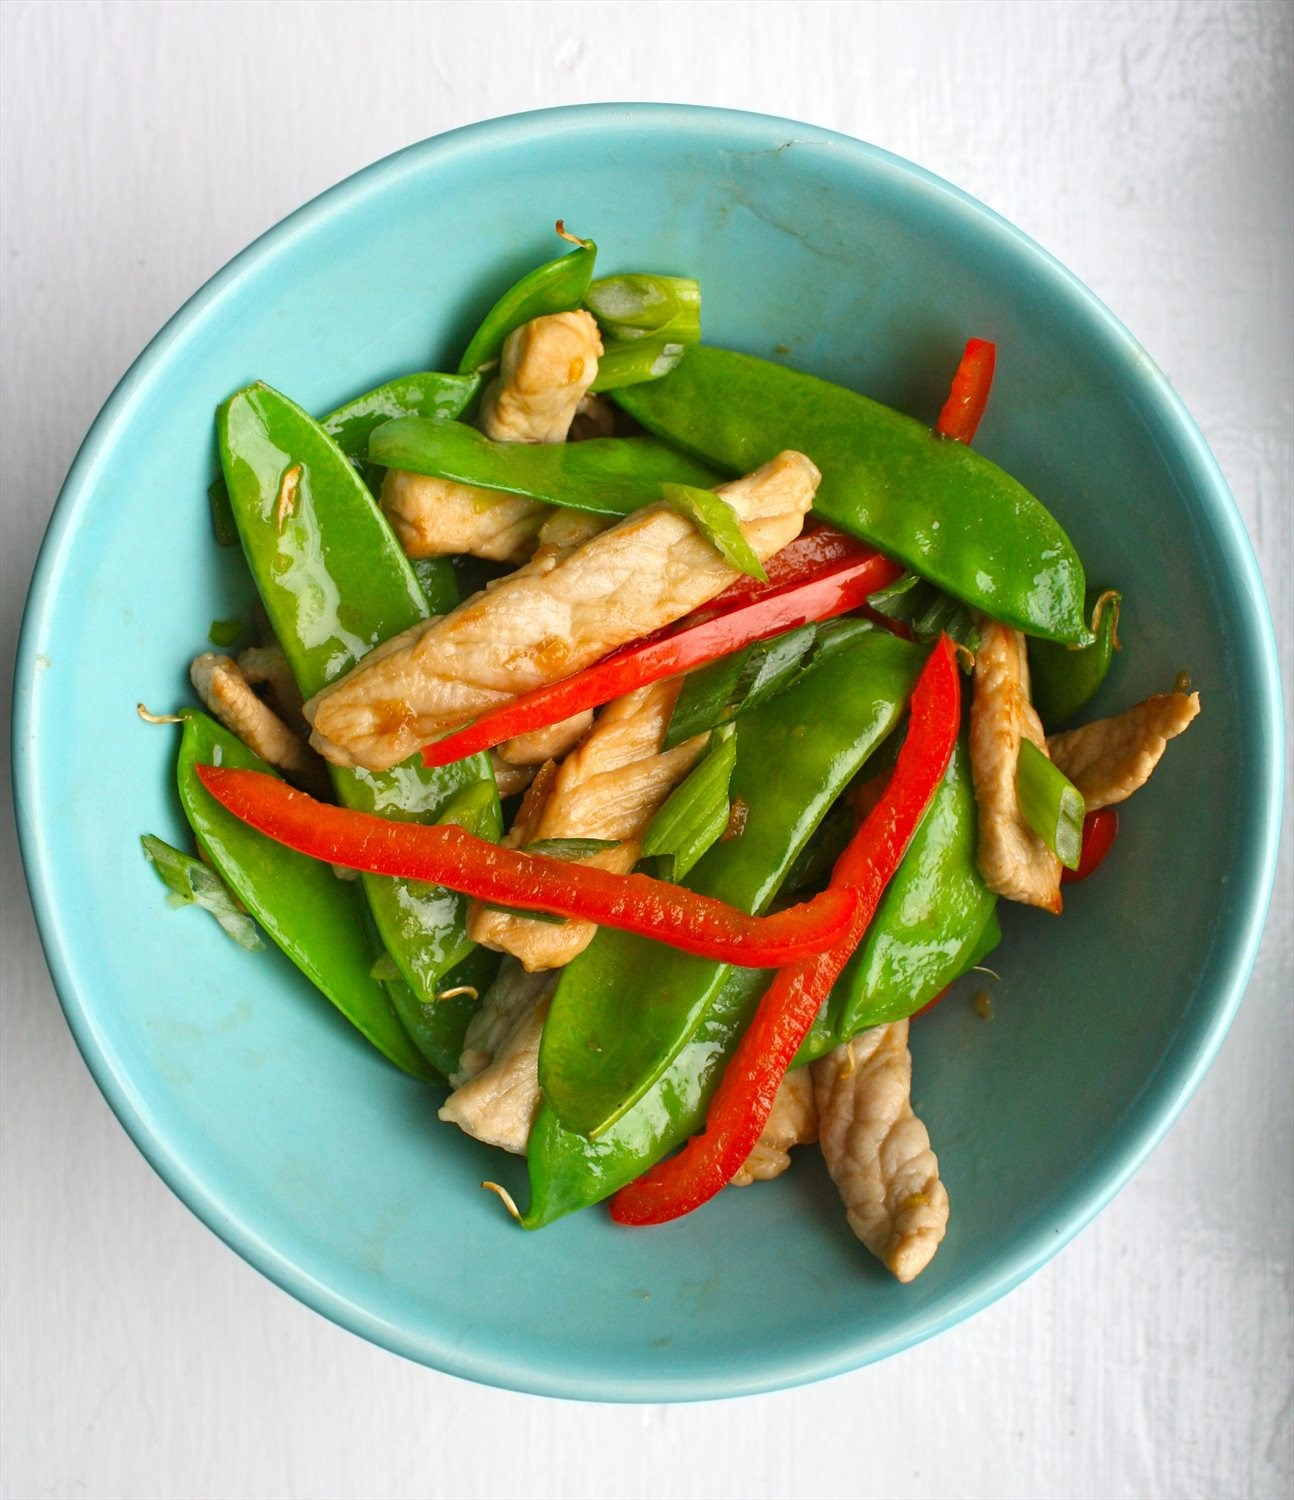 Pork and Snow Pea Stir Fry